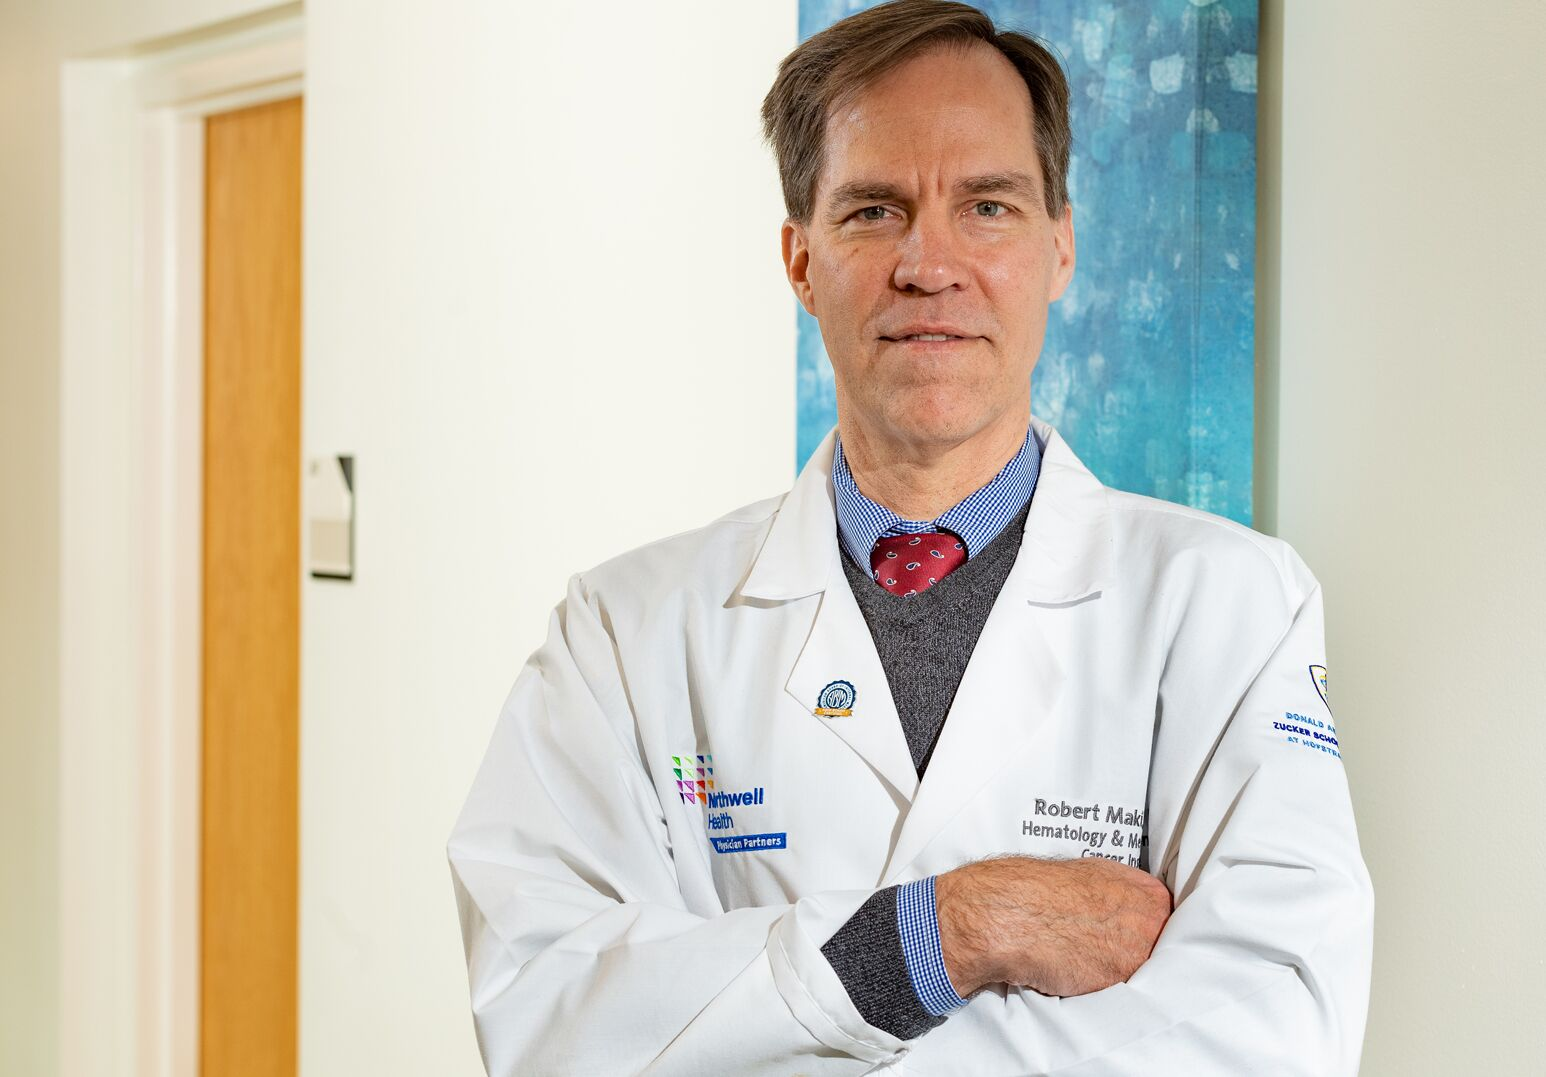 Robert Maki, MD, PhD